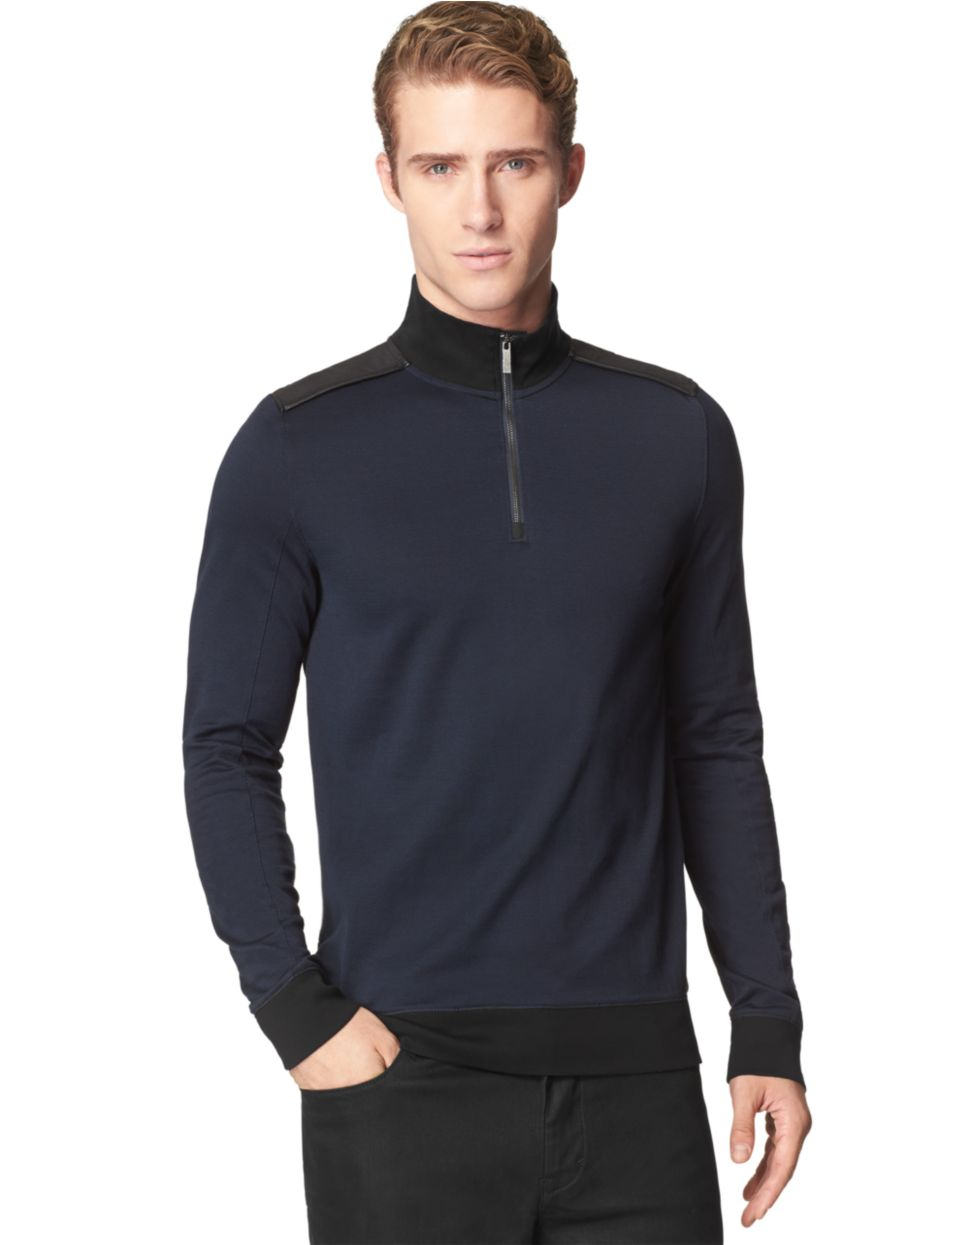 calvin klein jacquard quarter zip pullover in blue for men lyst. Black Bedroom Furniture Sets. Home Design Ideas